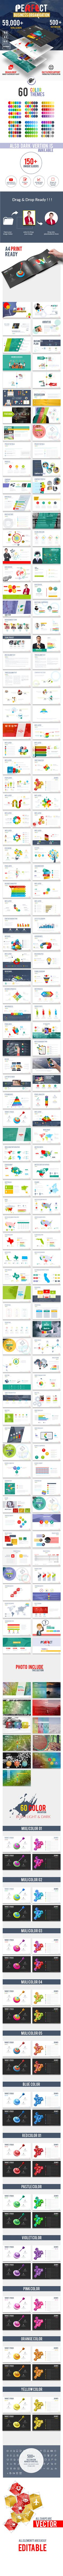 Perfect - Business Powerpoint Template  (PowerPoint Templates)